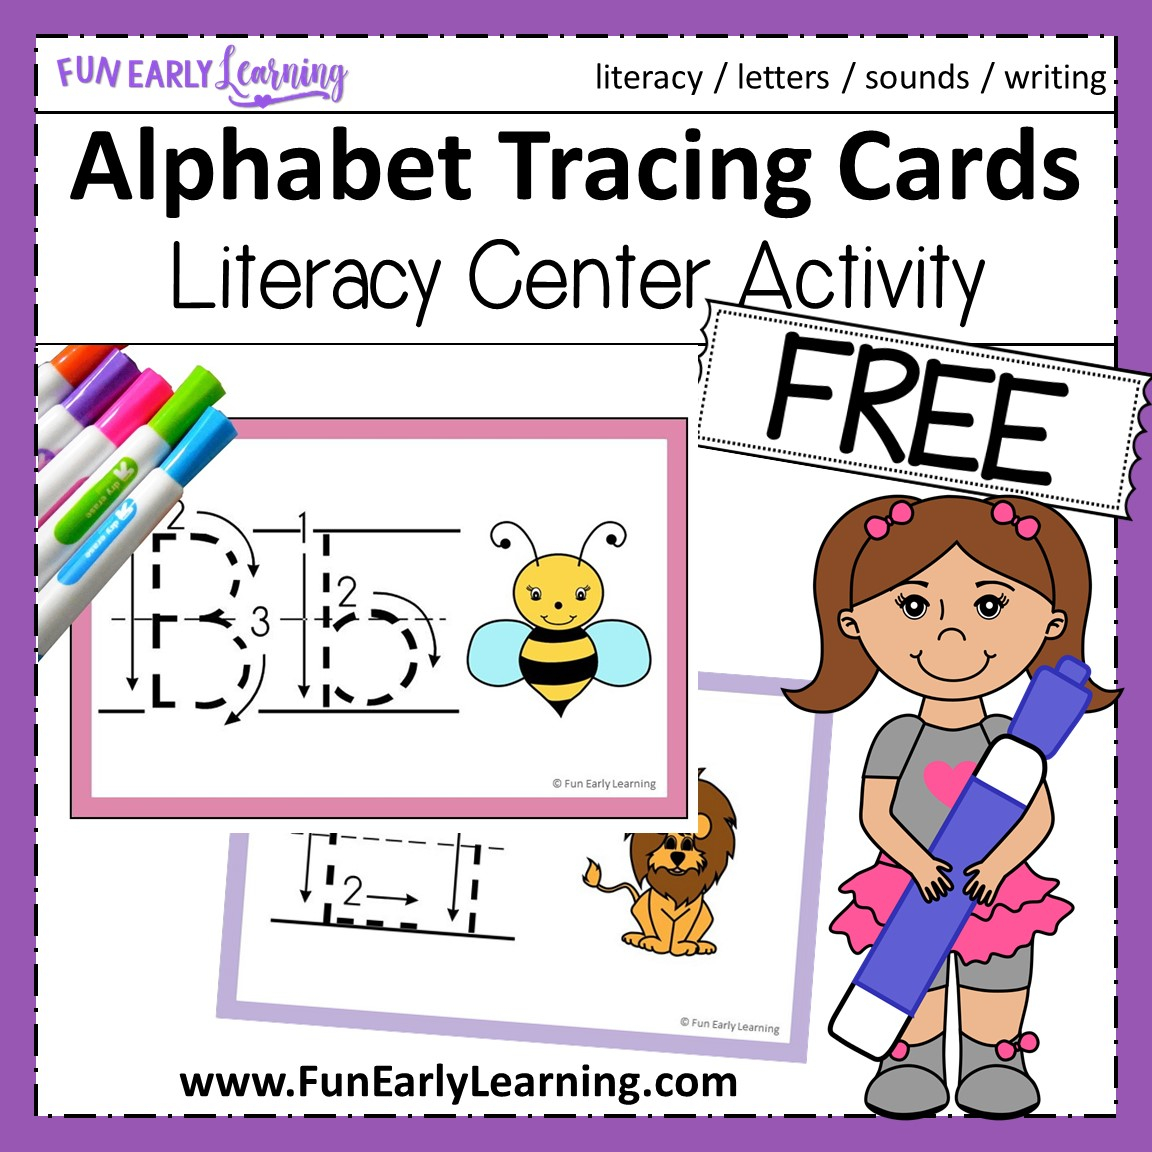 Teach Letters And Writing With Our Free Alphabet Animal pertaining to Letter Tracing Download Free